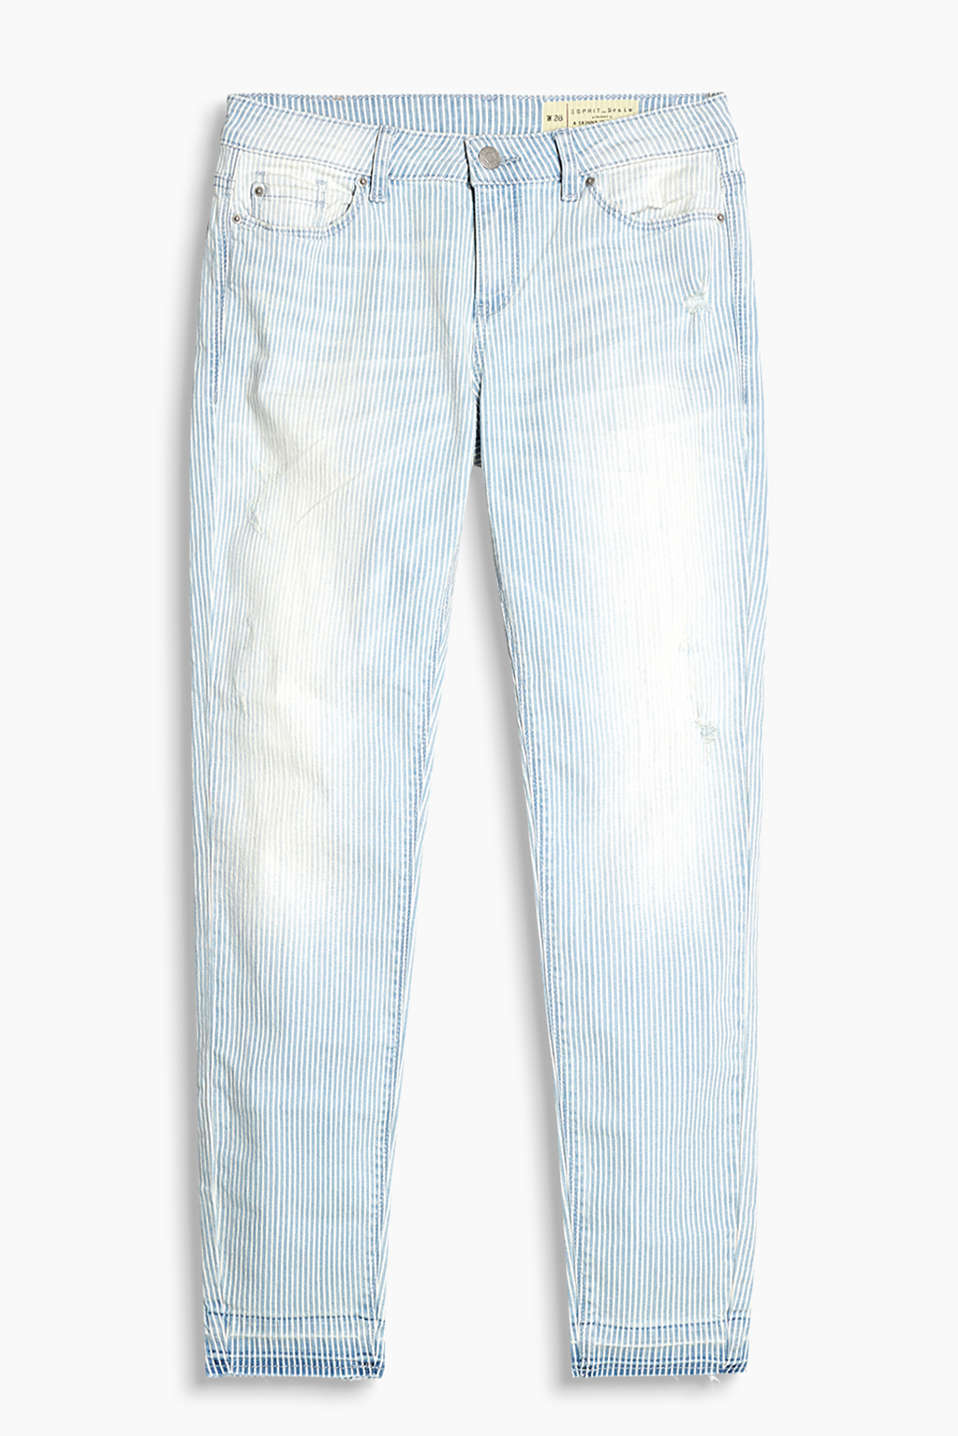 Striped stretch jeans with vintage effects and frayed hems